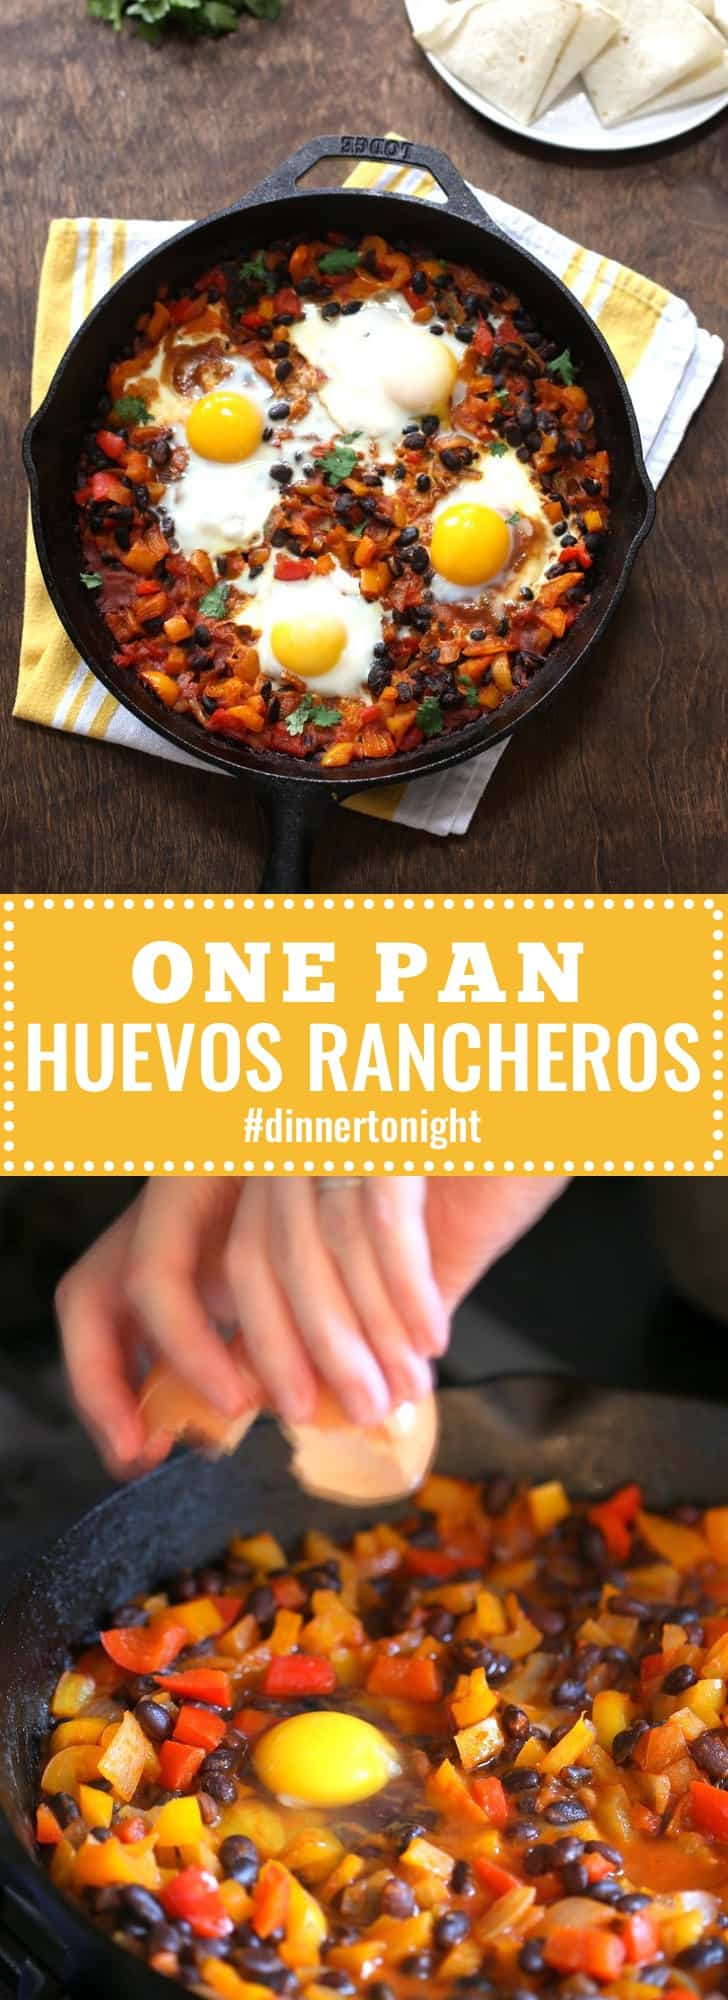 Huevos Rancheros - This rustic one pan meal makes a great vegetarian weeknight dinner. Frozen bell peppers add color and crunch. Top with cheese, avocado, sour cream or extra salas! #dinnertonight #30minutemeals